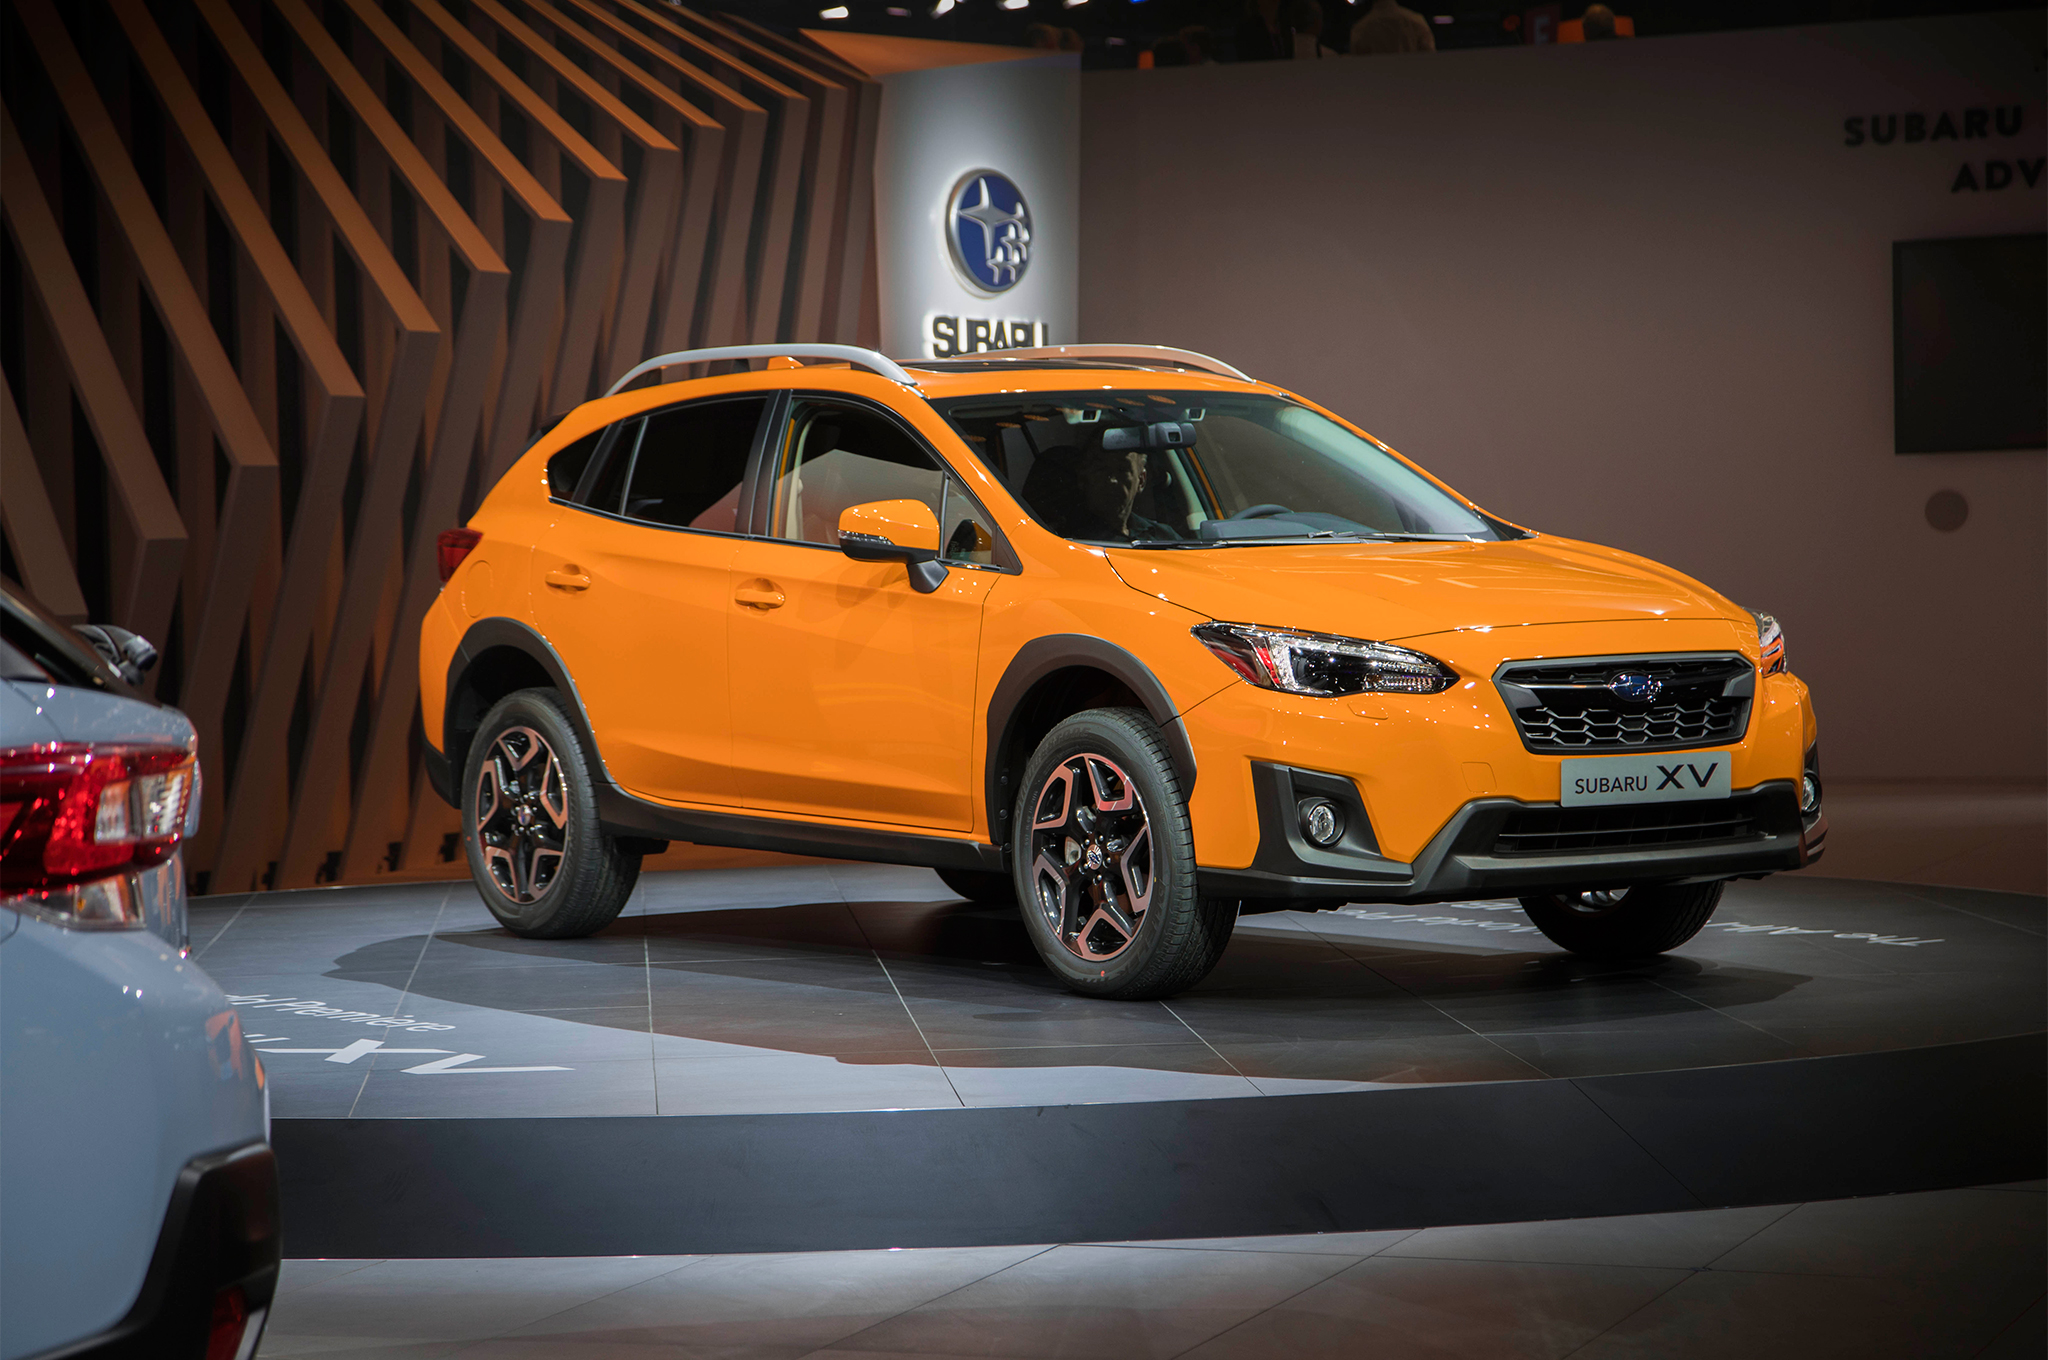 Subaru Certified Pre-Owned >> 2018 Subaru Crosstrek is almost here! - Subaru of Niagara